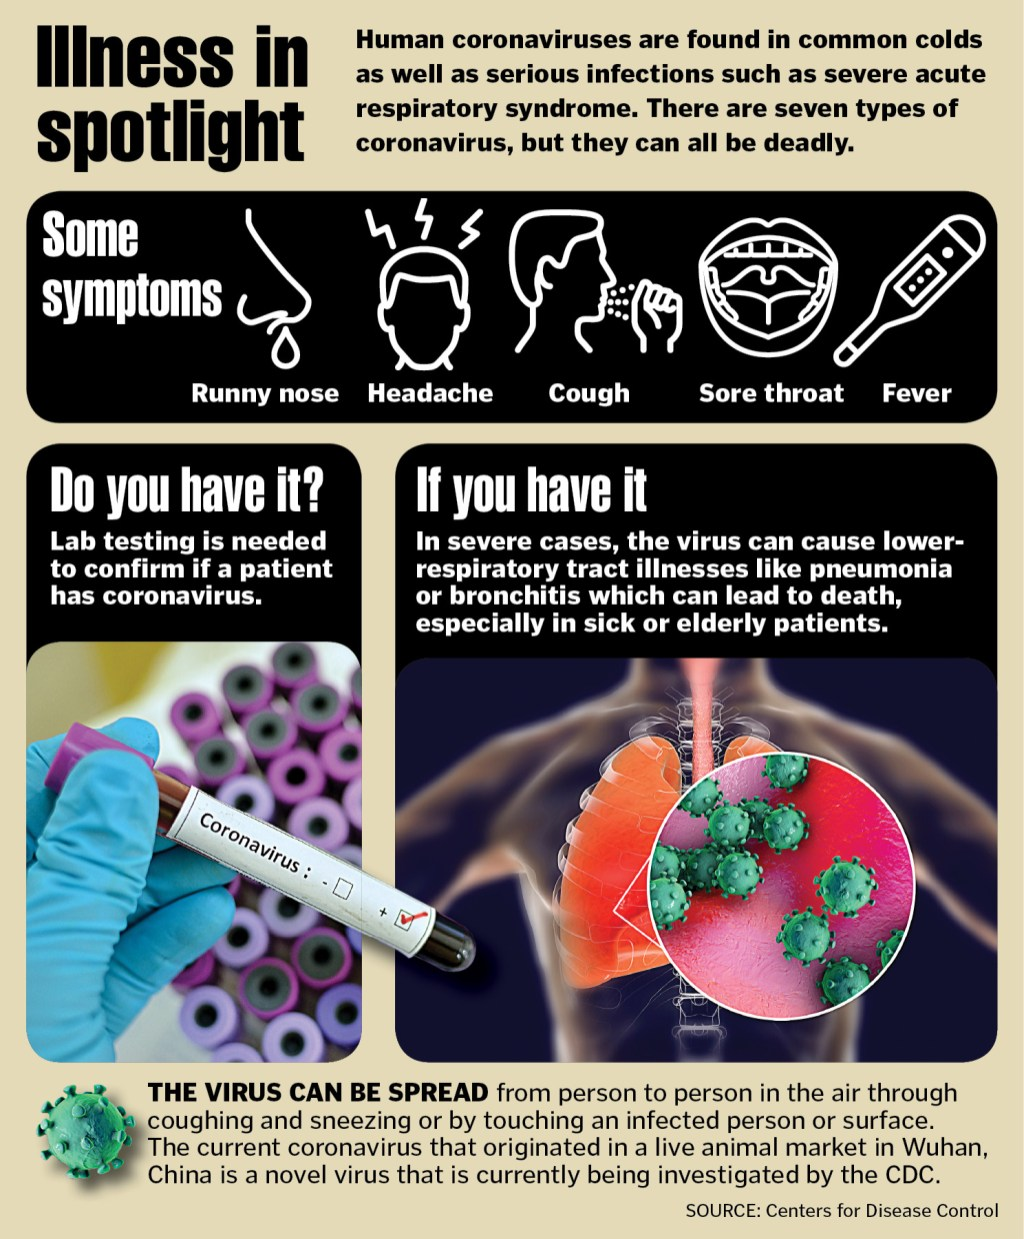 CDC advice for caring for the elderly during the coronavirus crisis